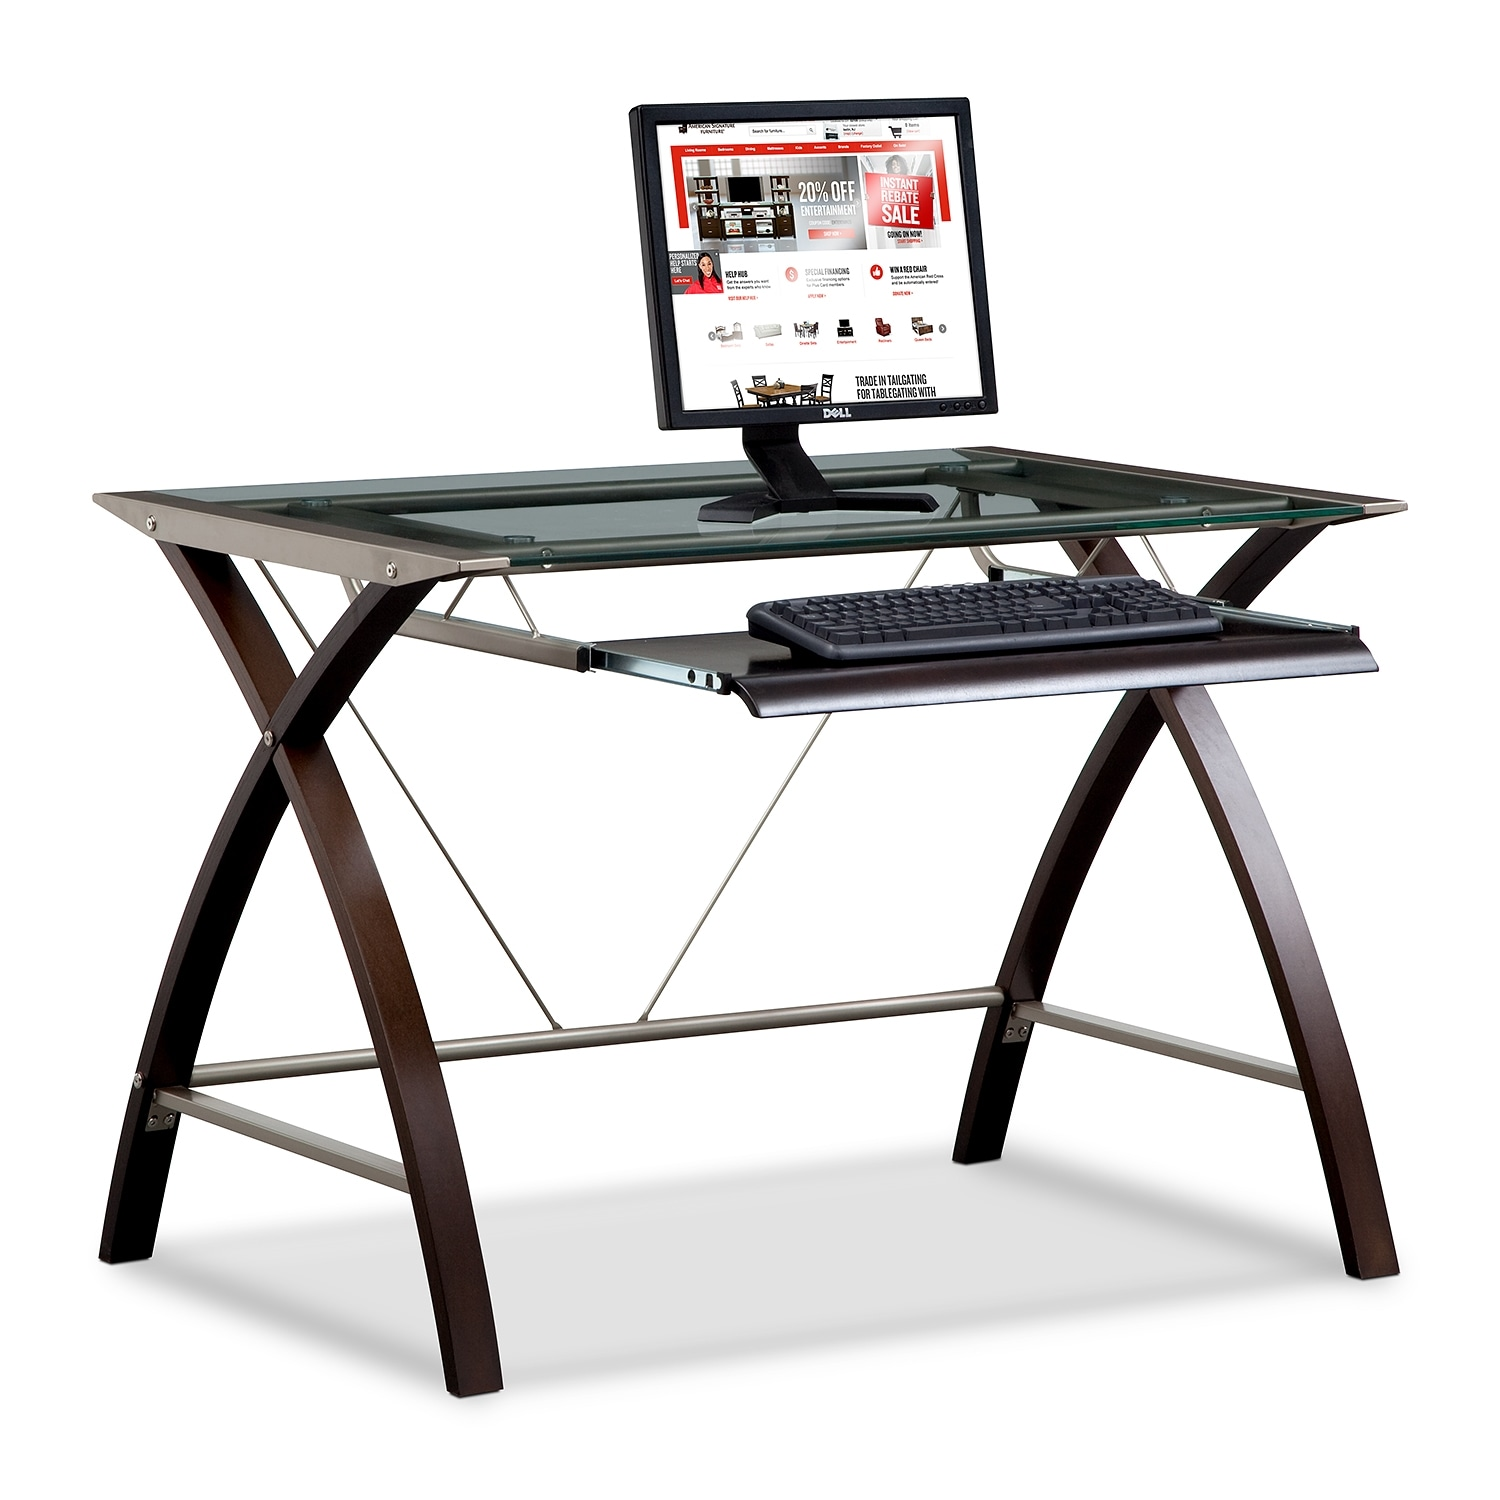 Home Office Furniture   Orion Computer Desk With Keyboard Tray   Merlot And  Champagne